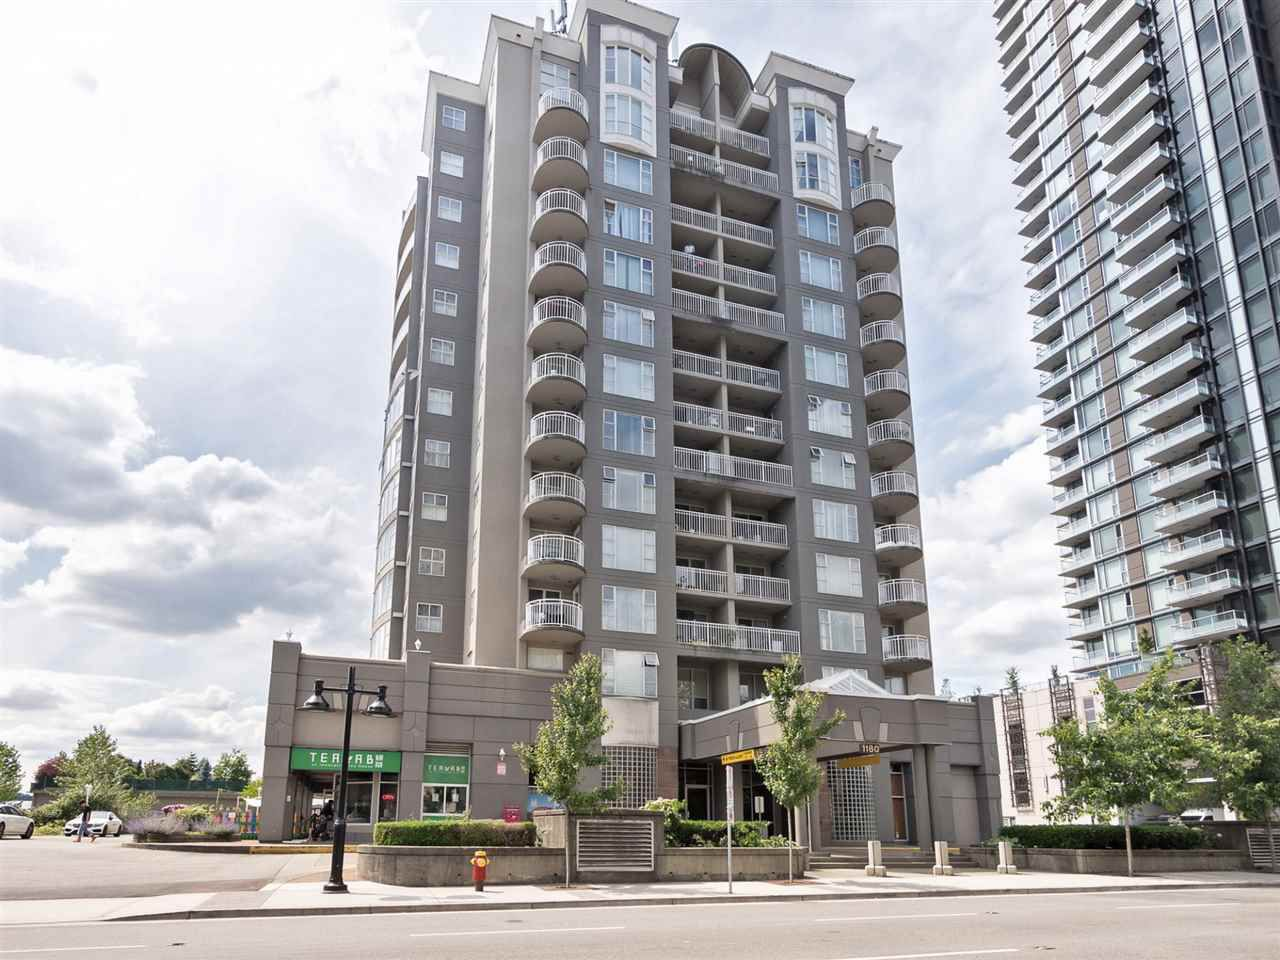 Main Photo: 306 1180 PINETREE Way in Coquitlam: North Coquitlam Condo for sale : MLS®# R2276350